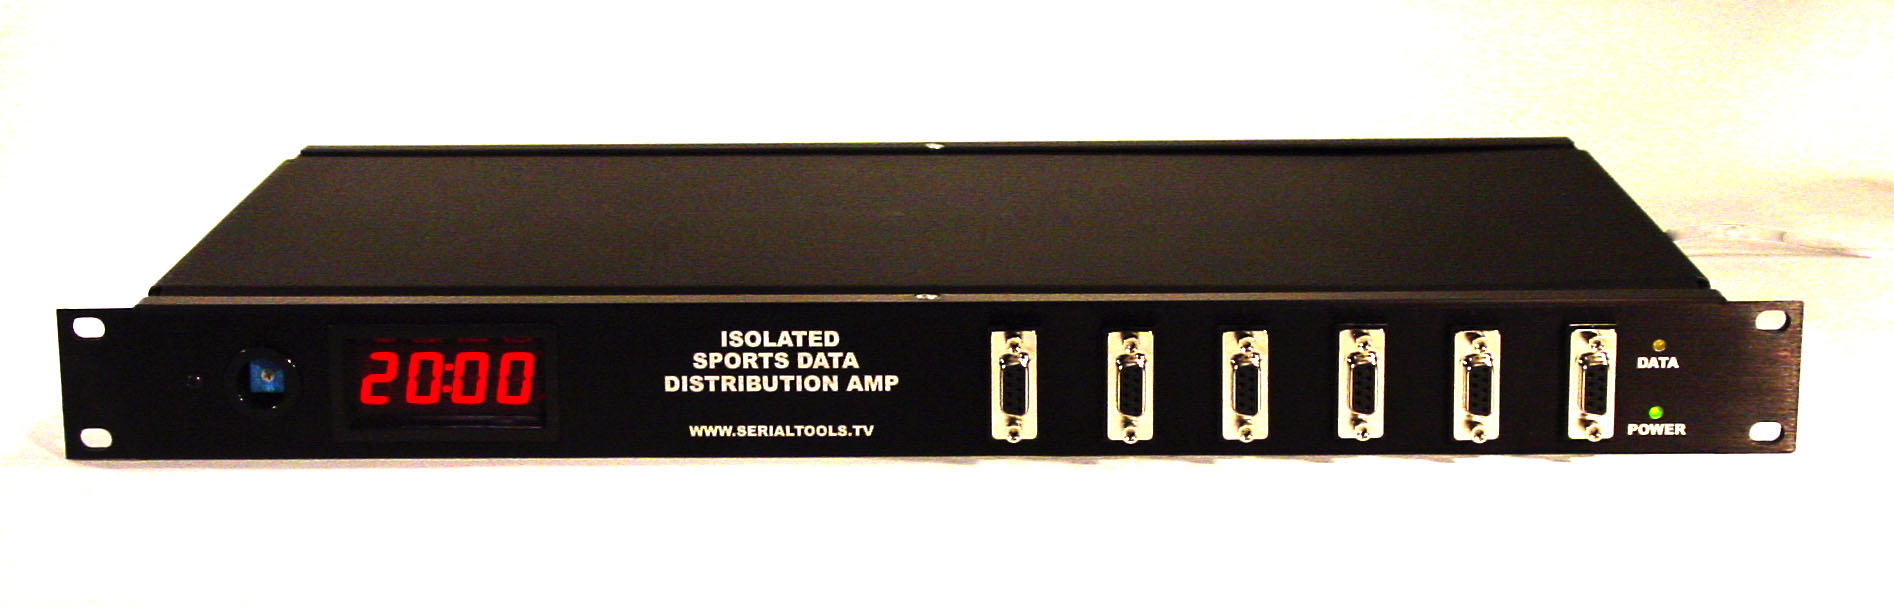 Isolated RS232 Distribution Amplifier with confidence display